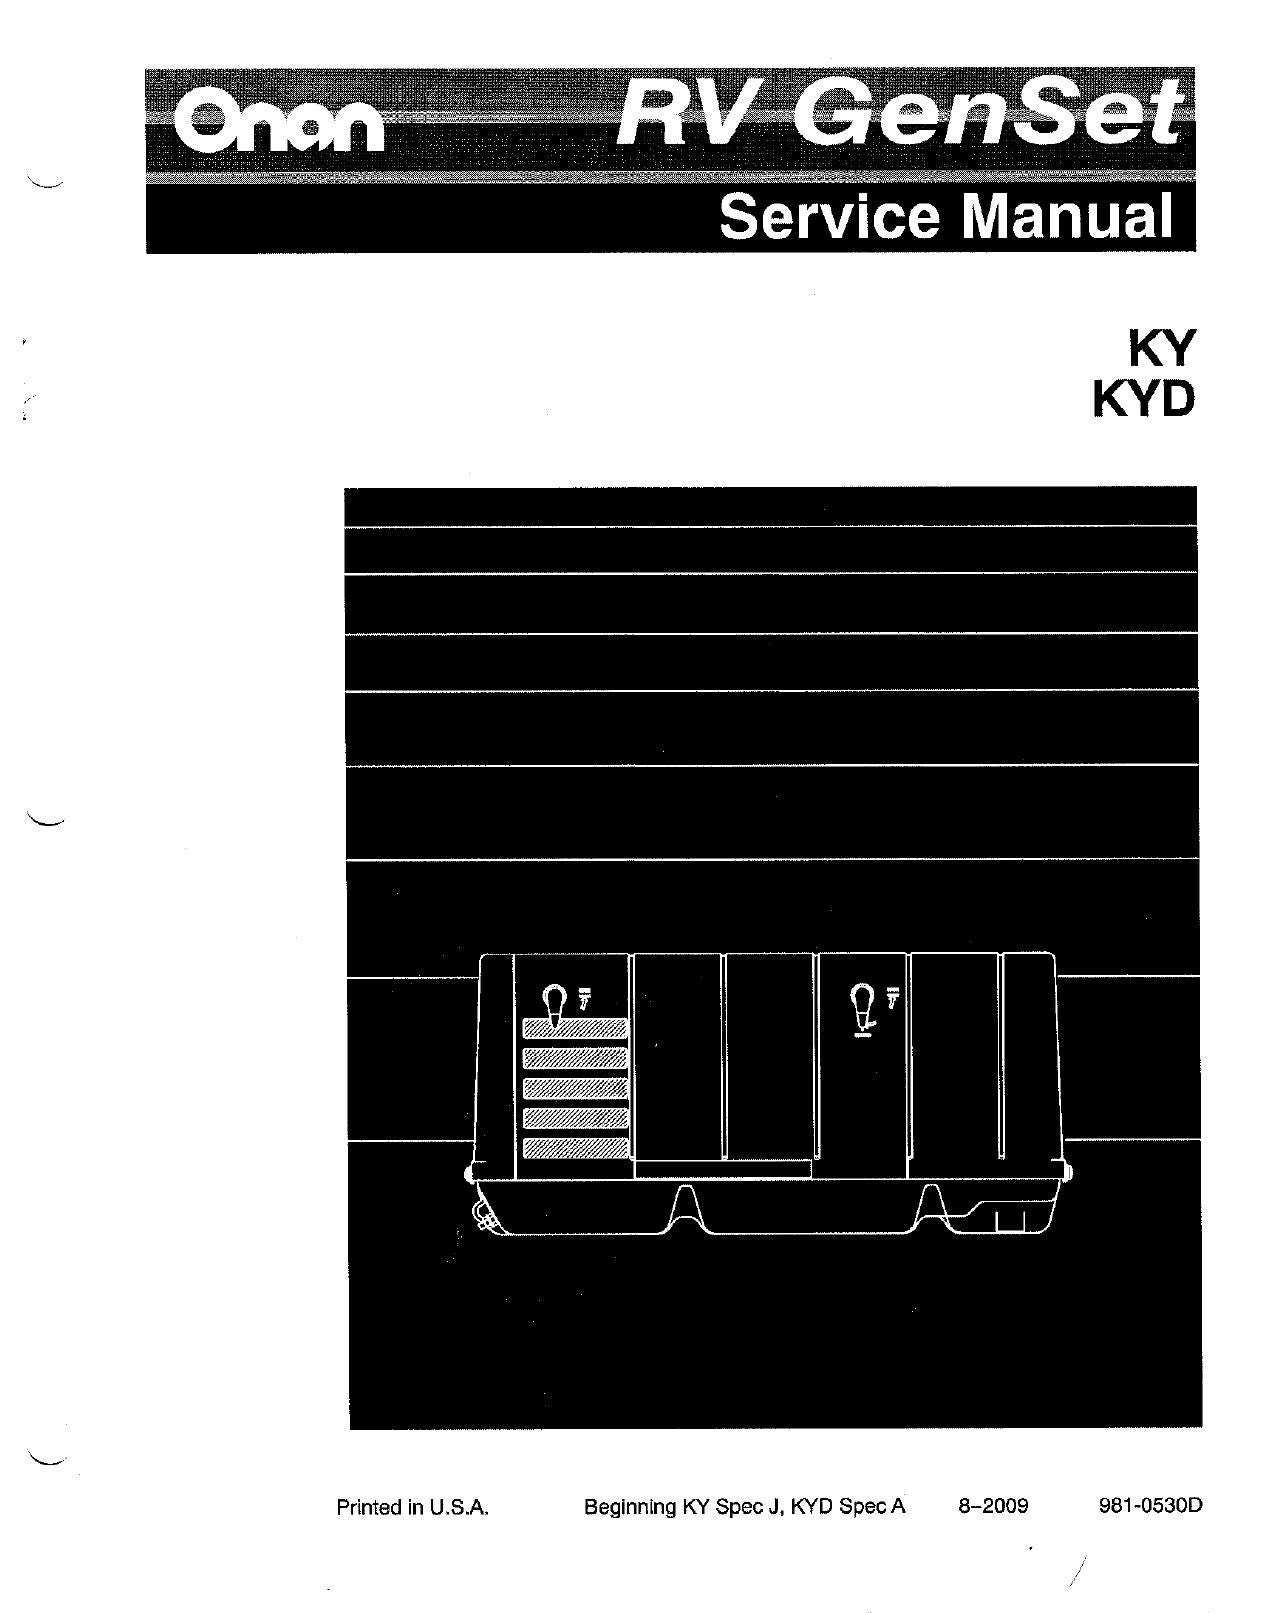 Onan Cummins Genset KY KYD 4KW Service Manual by Ripper Jim - issuu